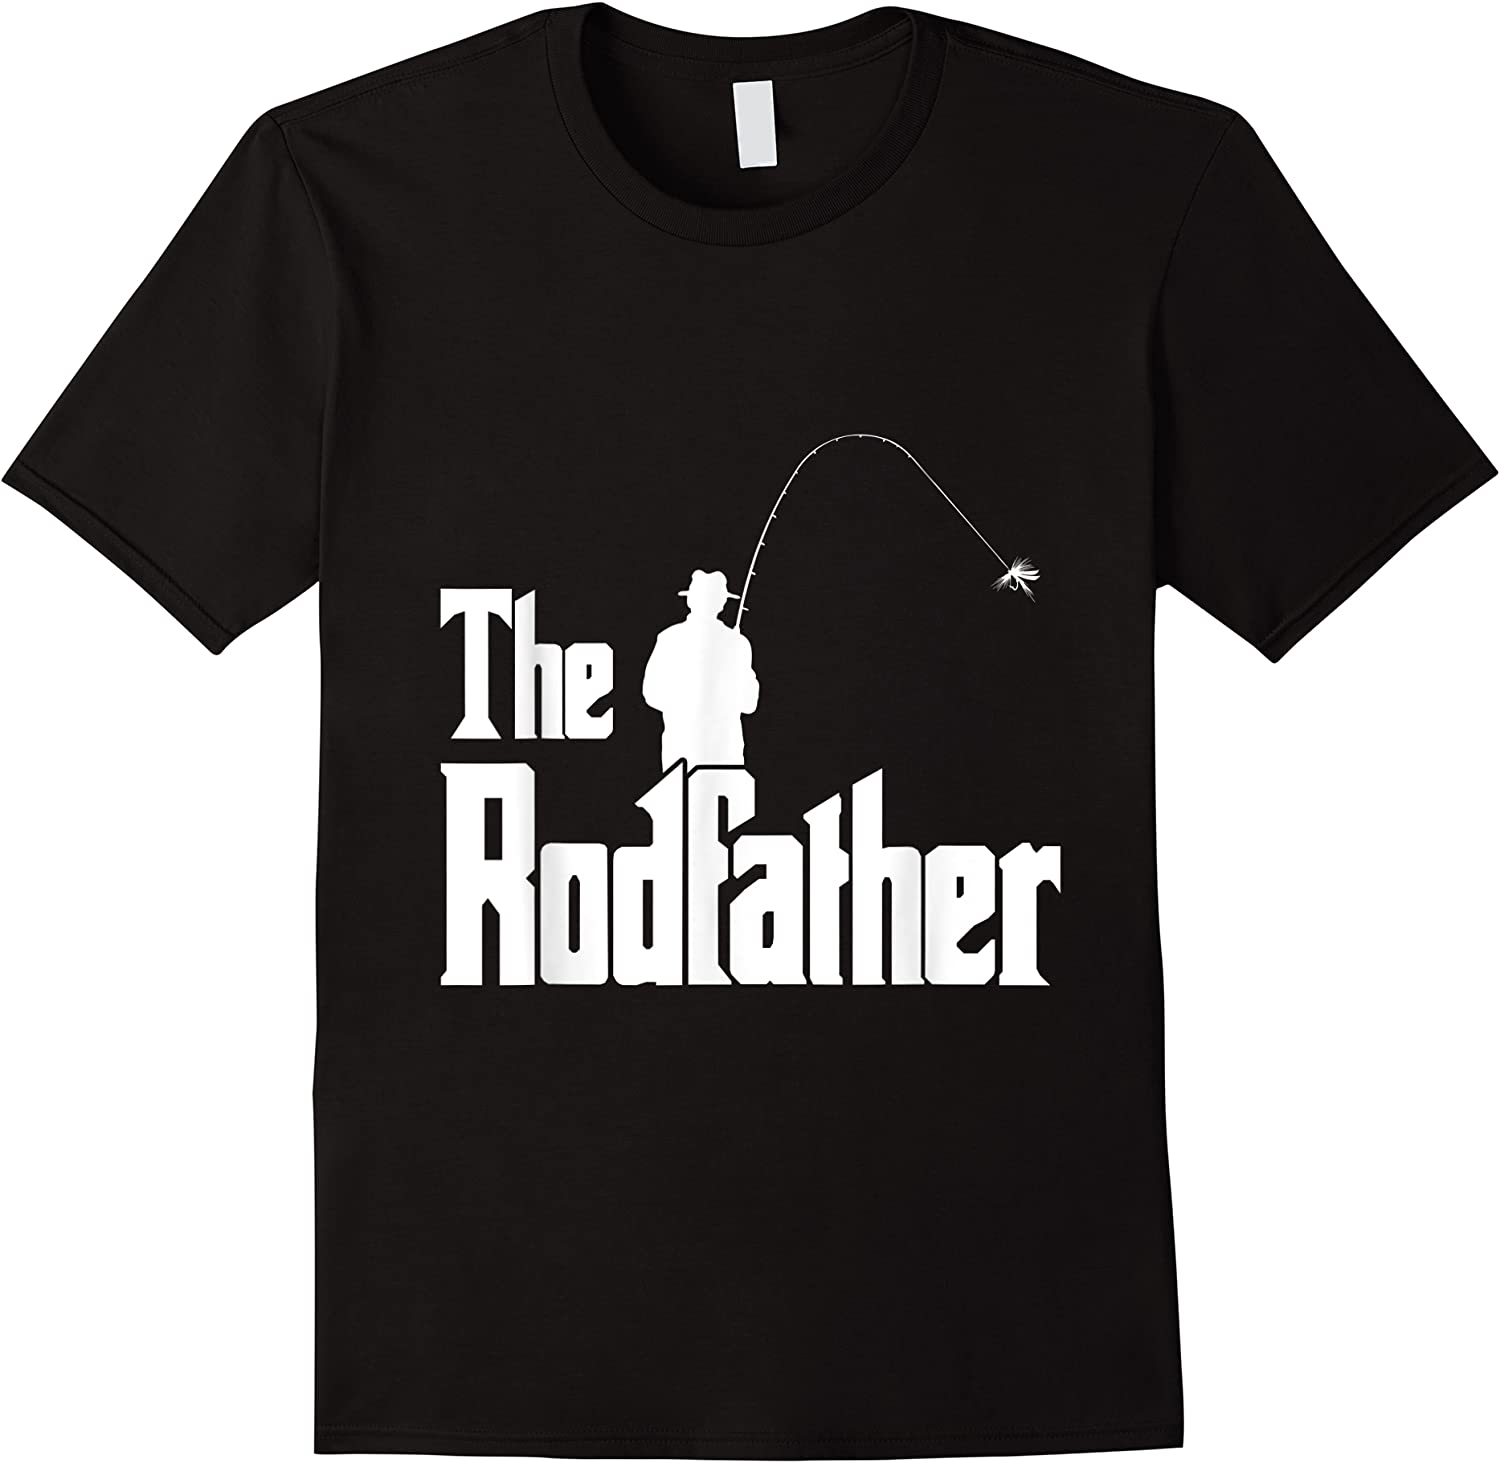 The Rodfather Is On The River This Christmas T-shirt